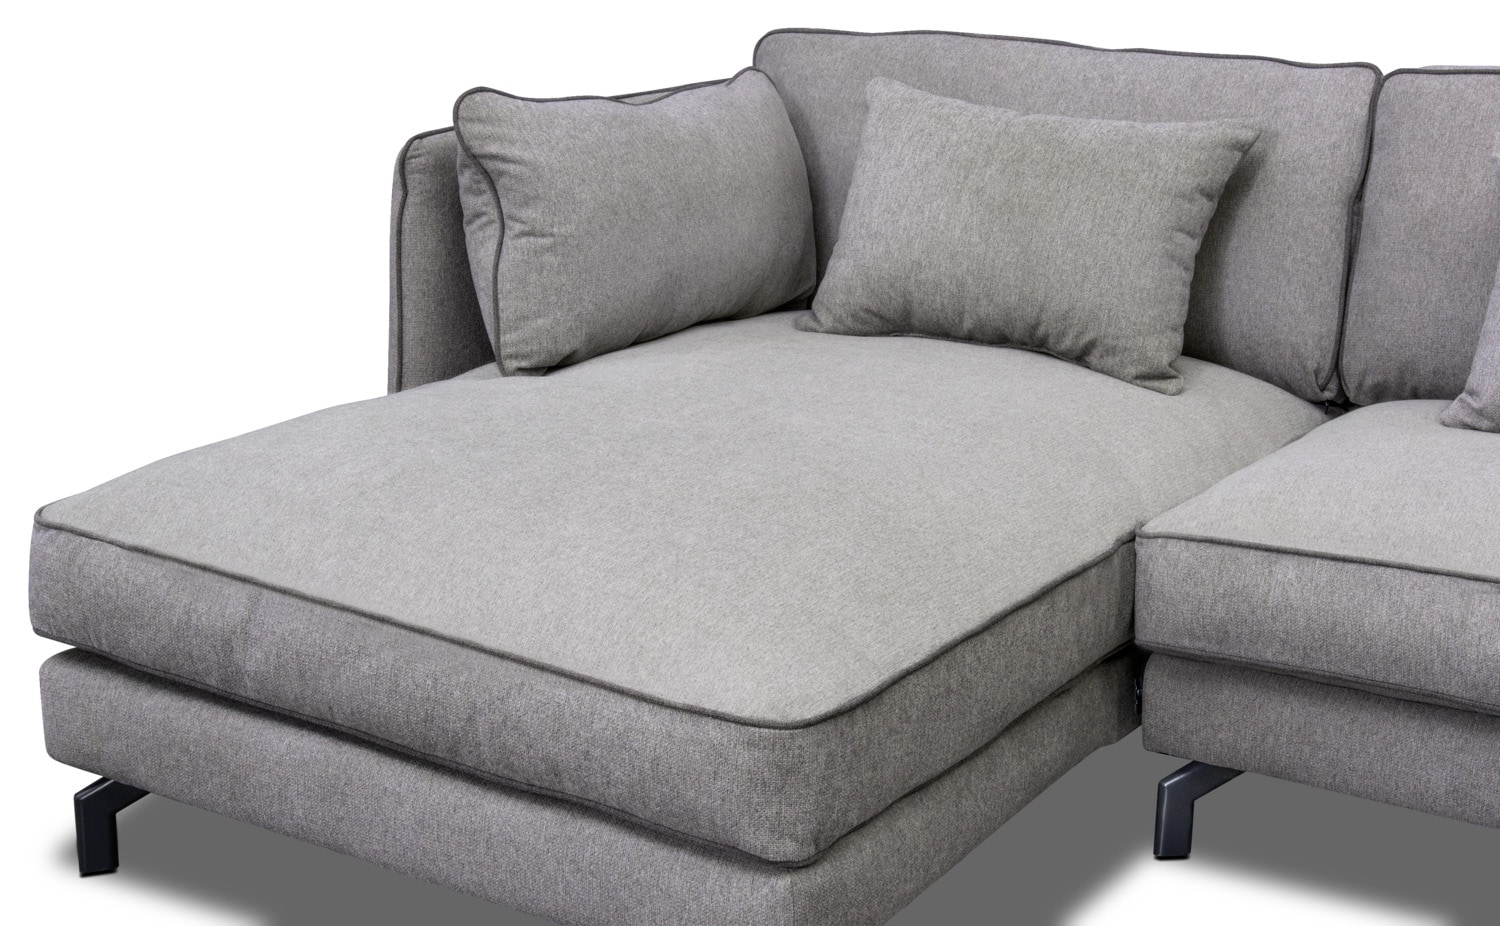 Toby 2-Piece Sectional with Left-Facing Chaise - Gray   Value City ...